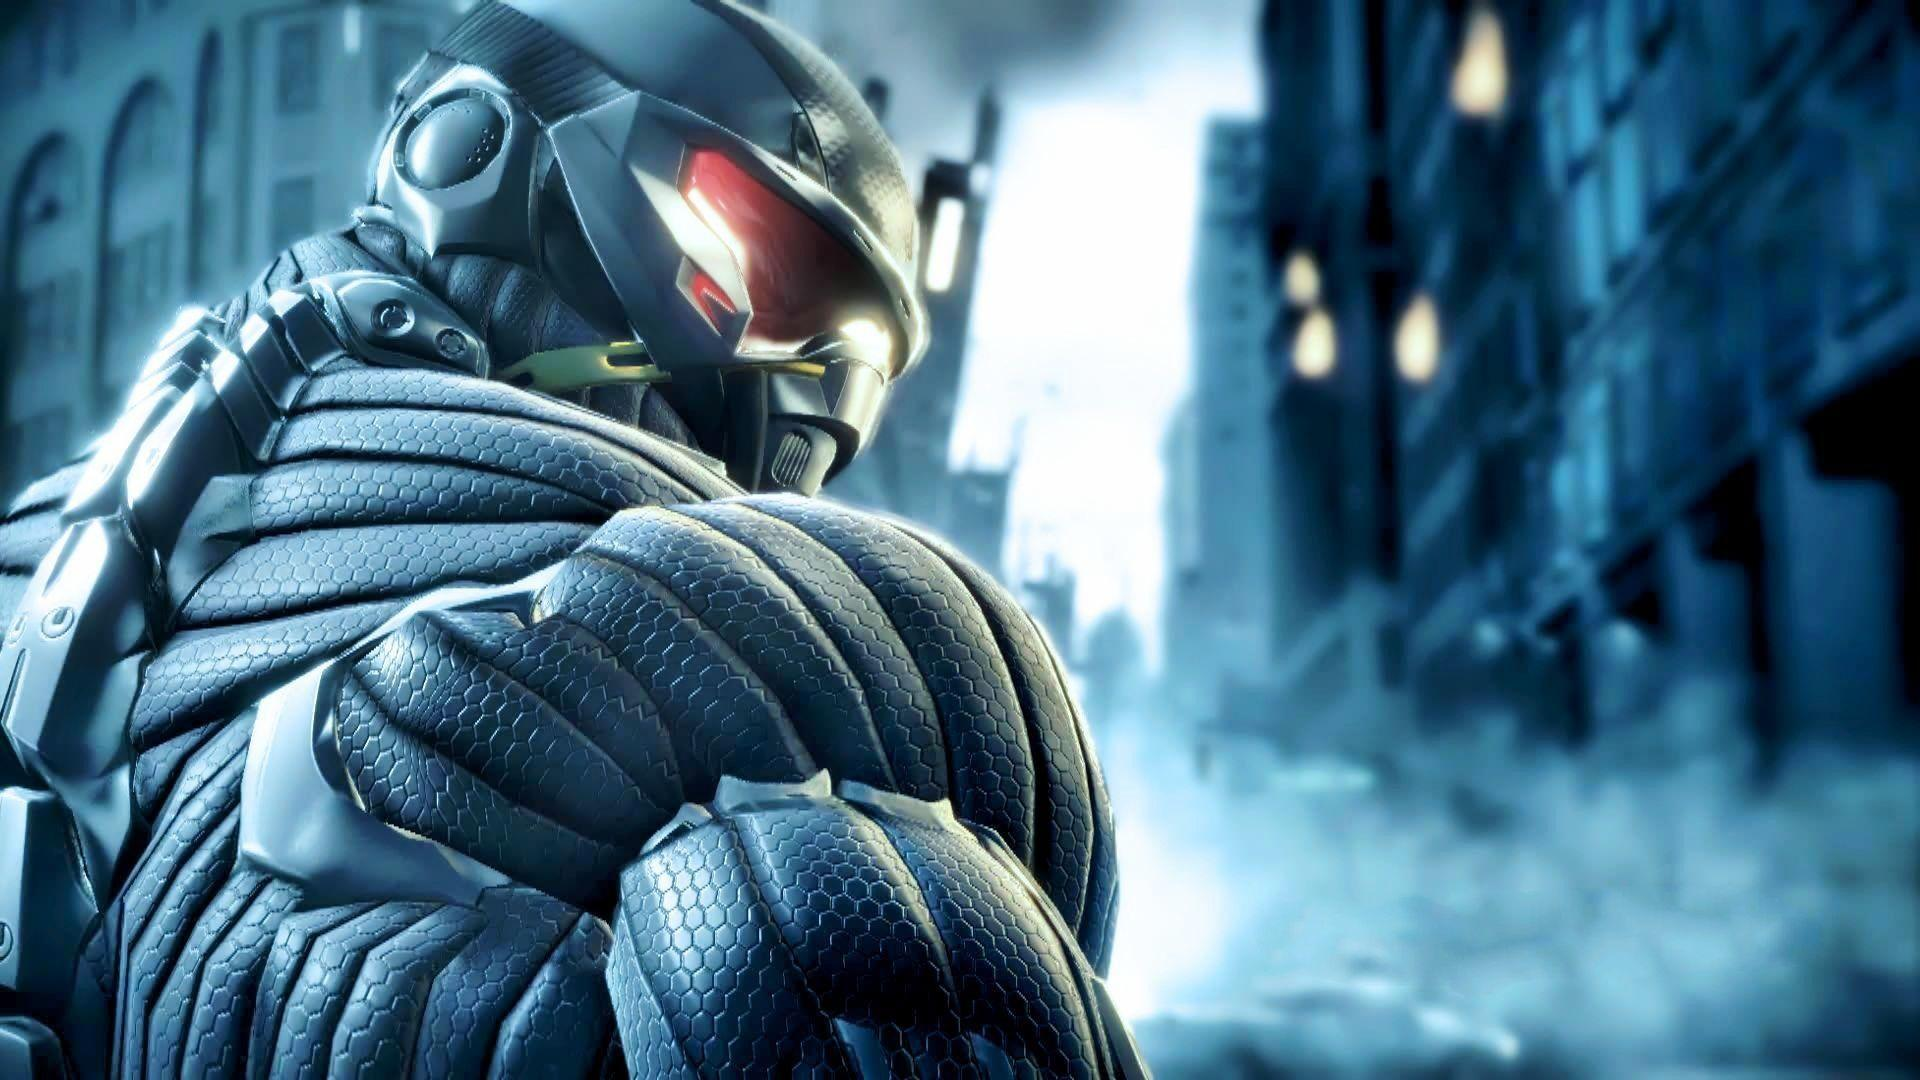 Ninja Gaiden 2 HDTV 1080p HD Game Wallpapers